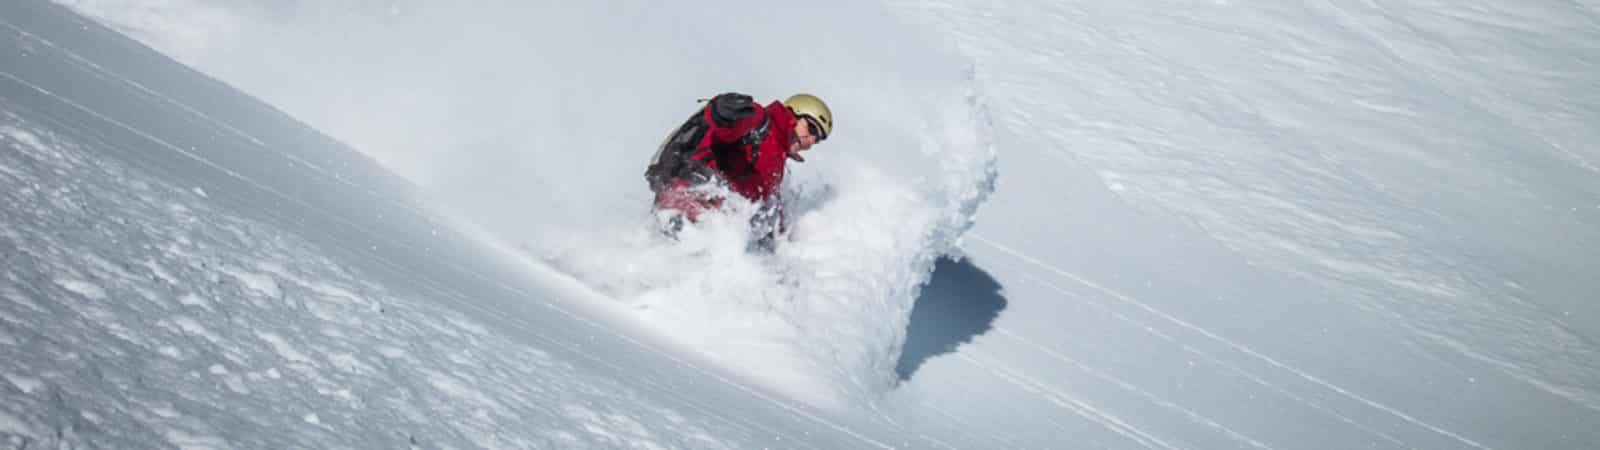 Verbier freeride and backcountry skiing